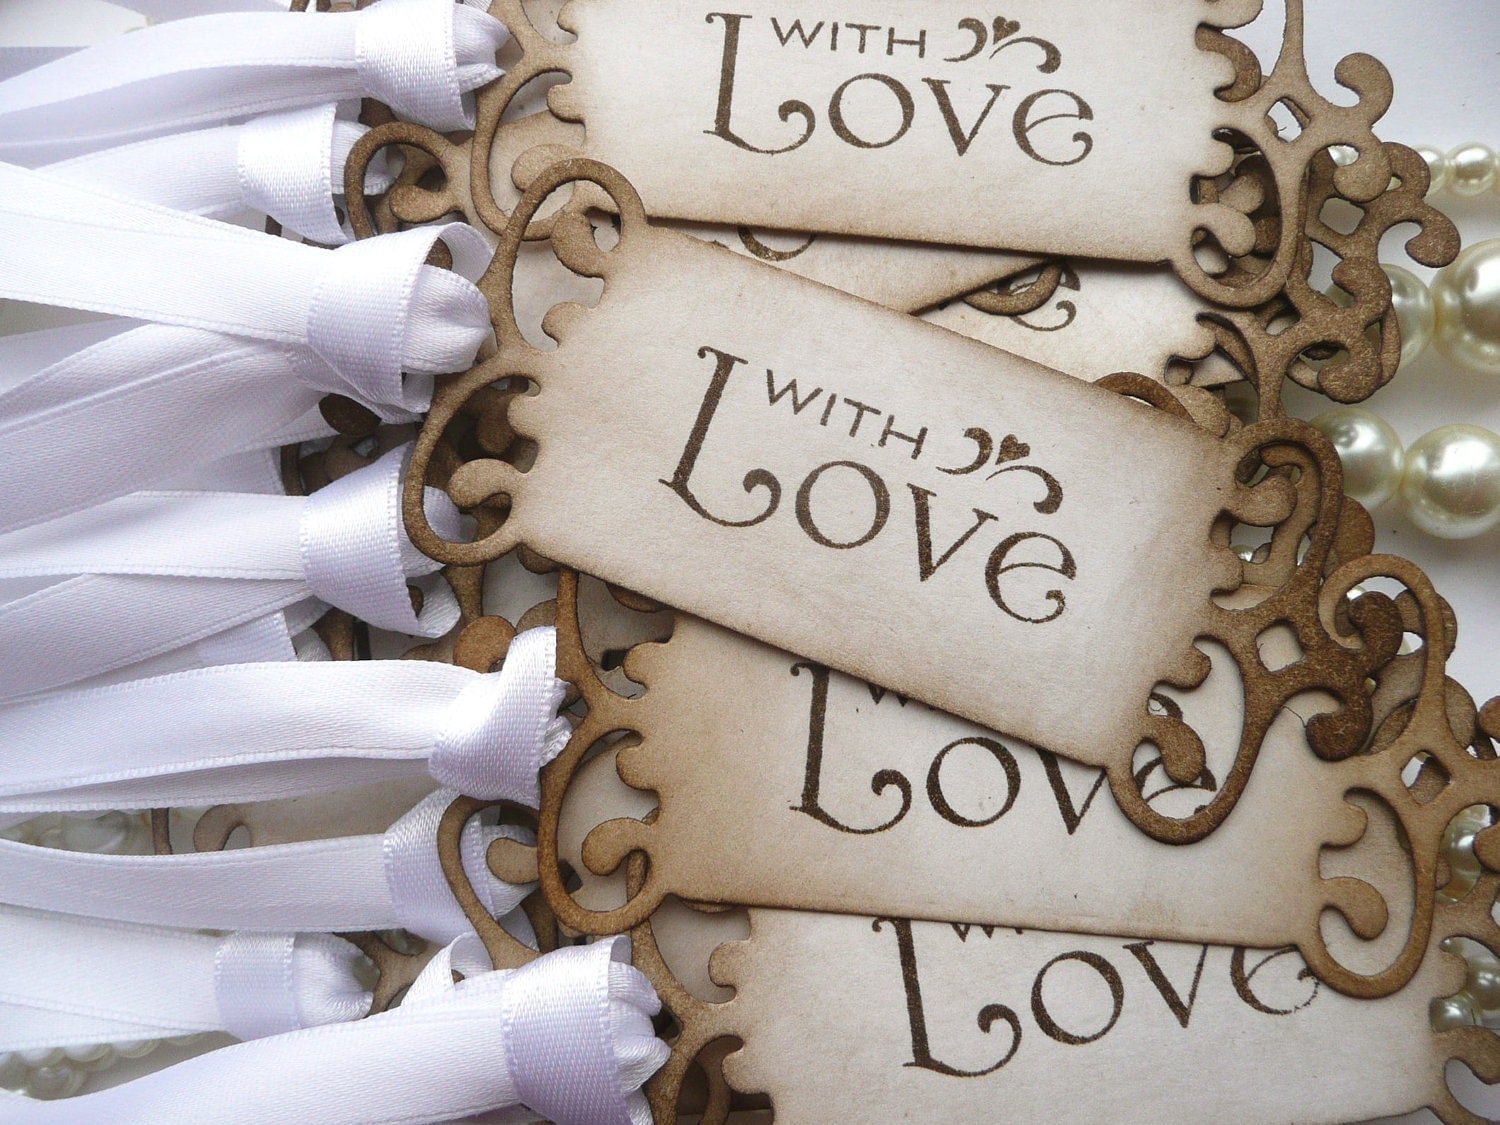 zoomWedding Favor Tags With Love Set of 75 Vintage Look Choice. Antique Wedding Favors. Home Design Ideas